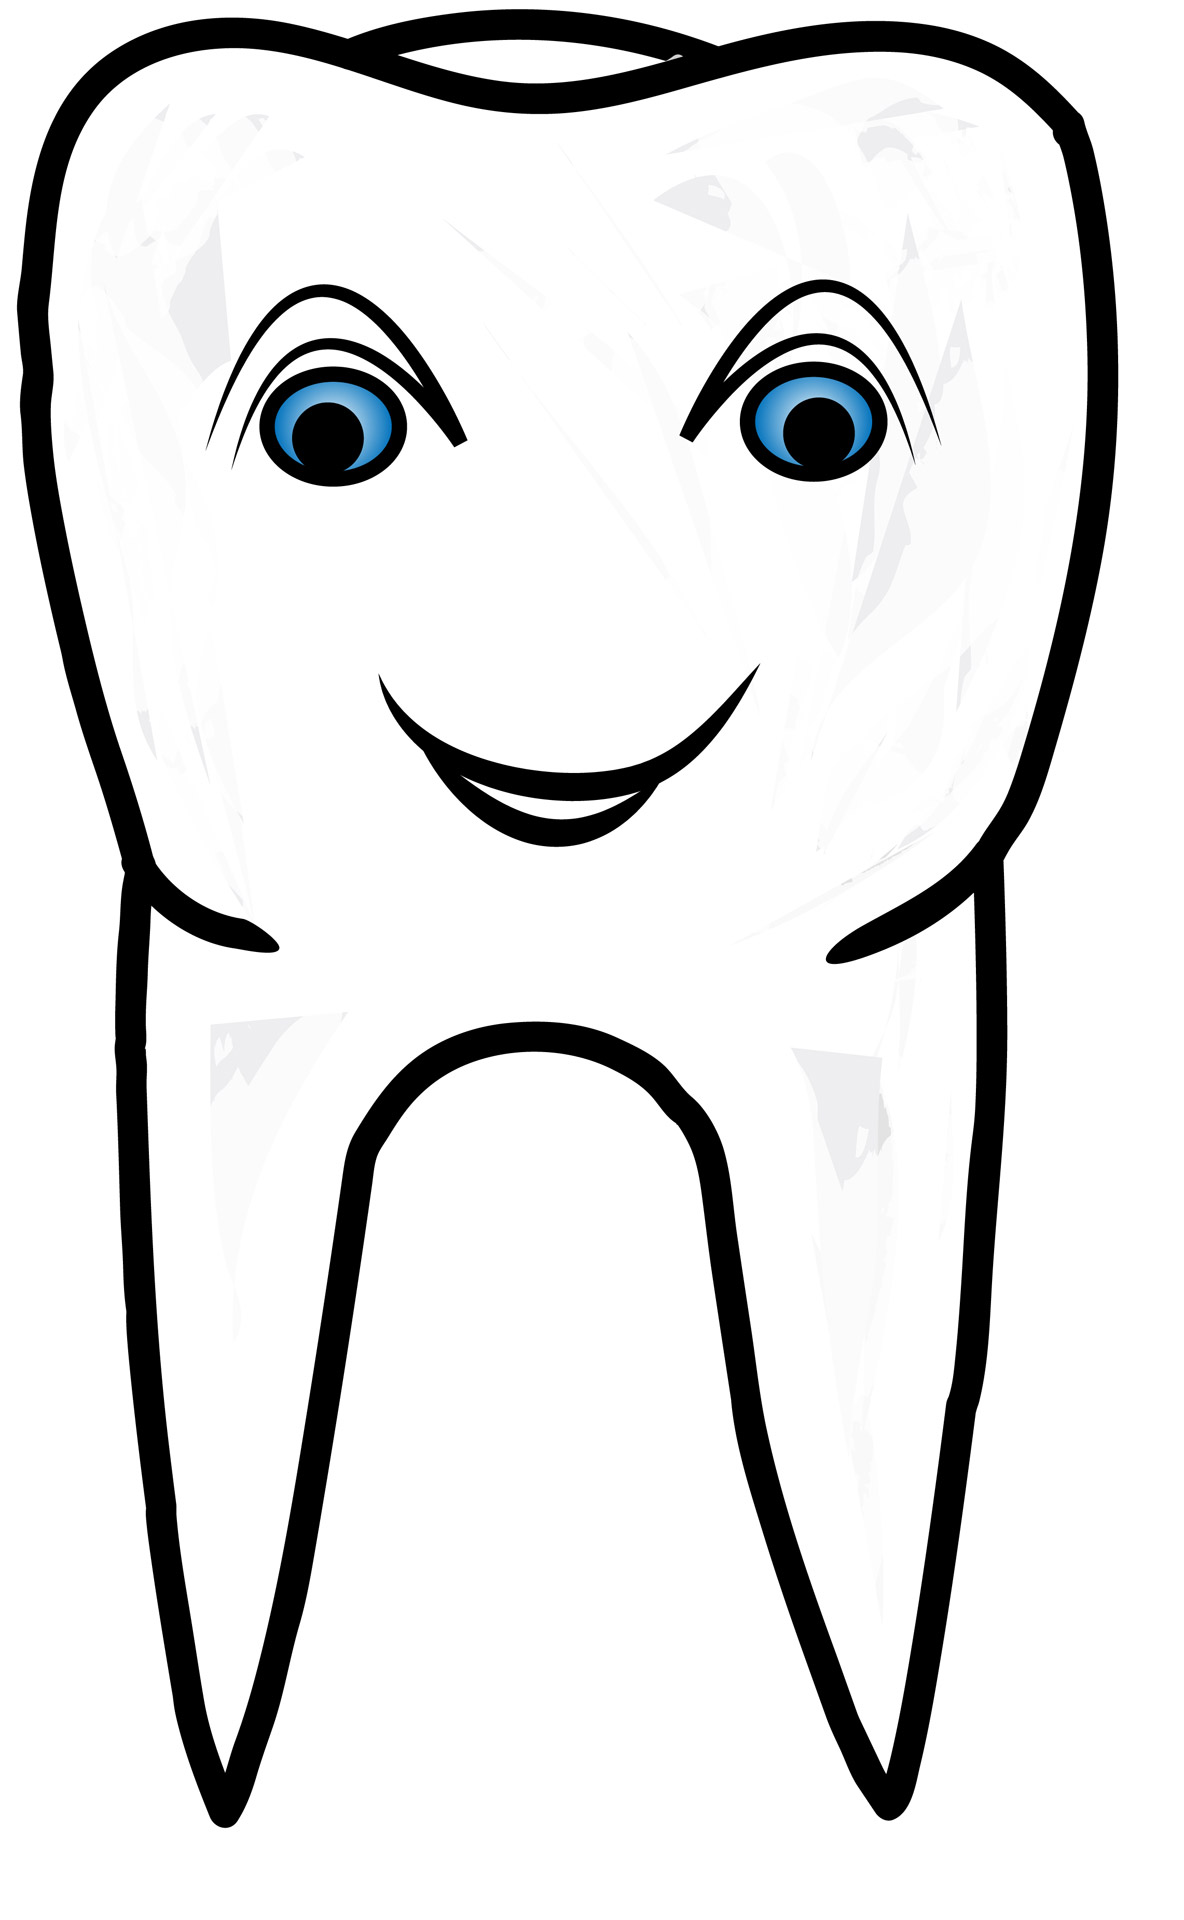 Stylized Smiling Healthy Tooth Free Stock Photo